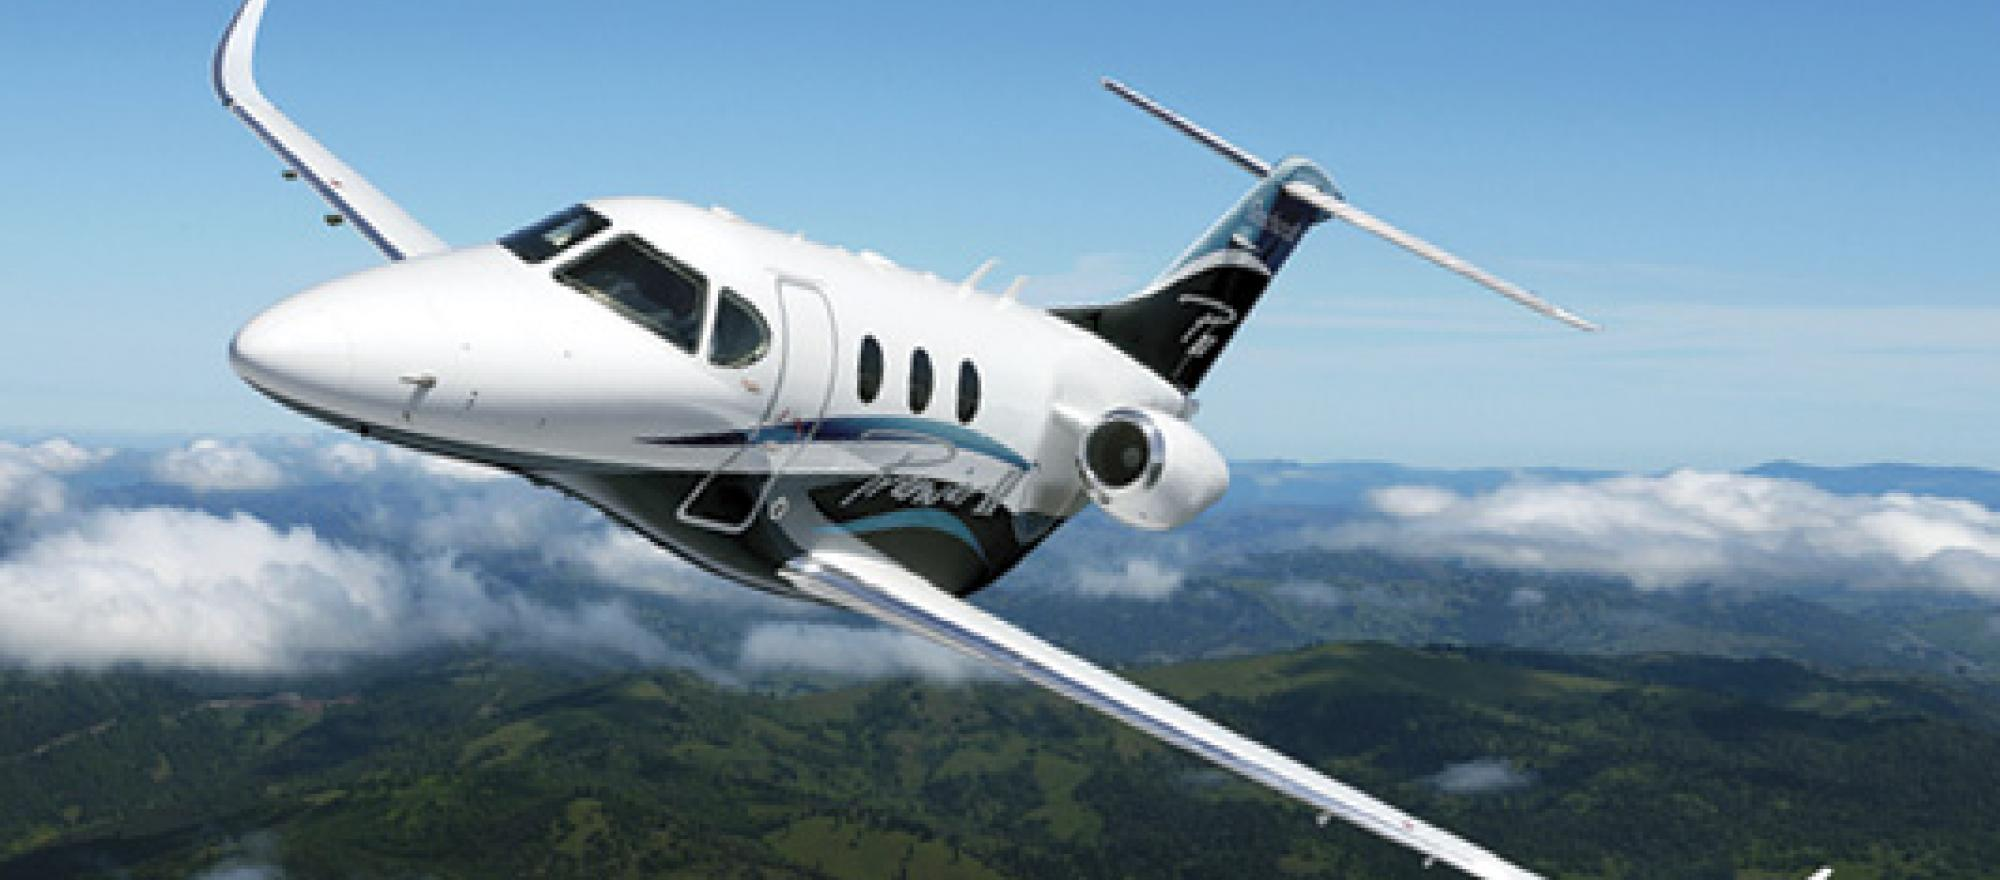 The $7.065 million Premier II is Hawker Beechcraft's follow-on to the Premier